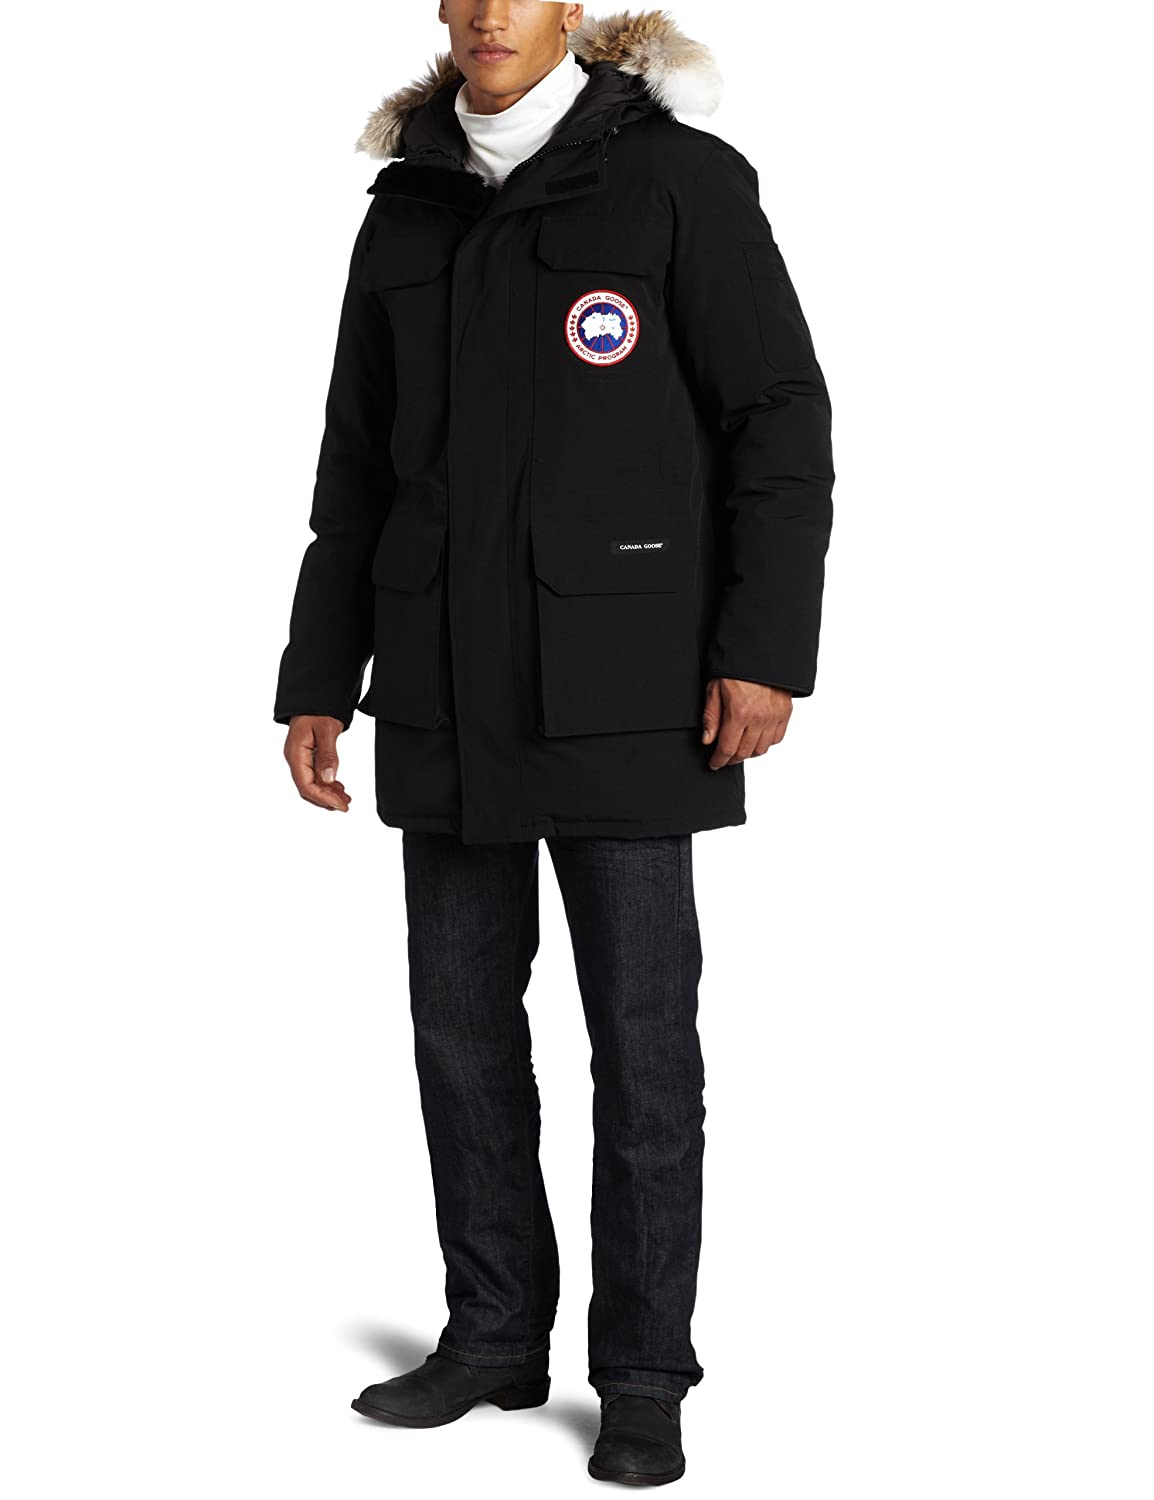 Amazon.com: Canada Goose Men's Citadel Parka,Black,Medium: Sports ...